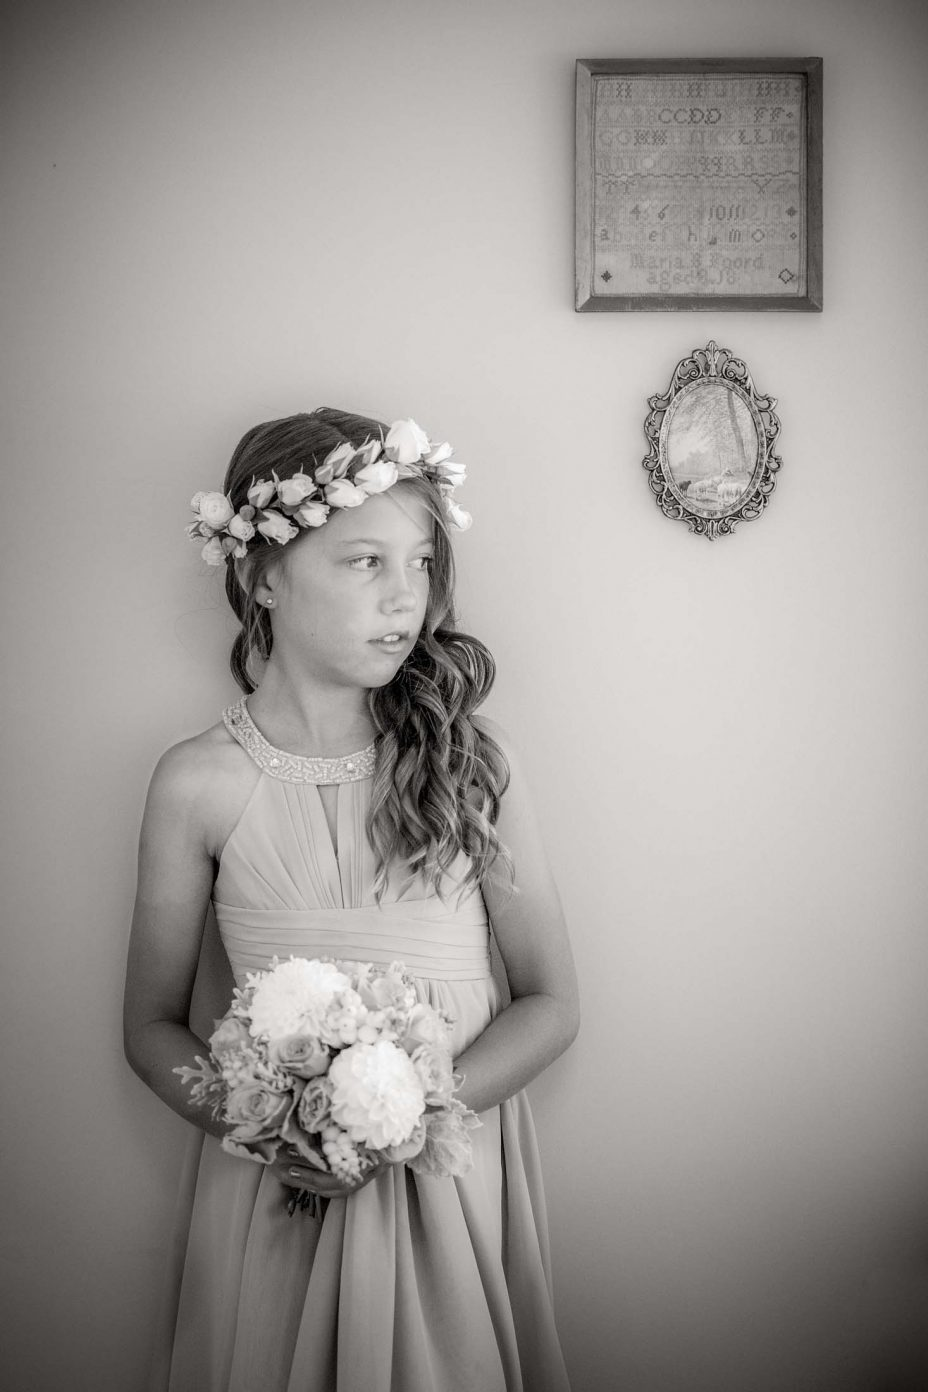 Bridesmaid girl in pink dress poses at wedding. Black and white photo